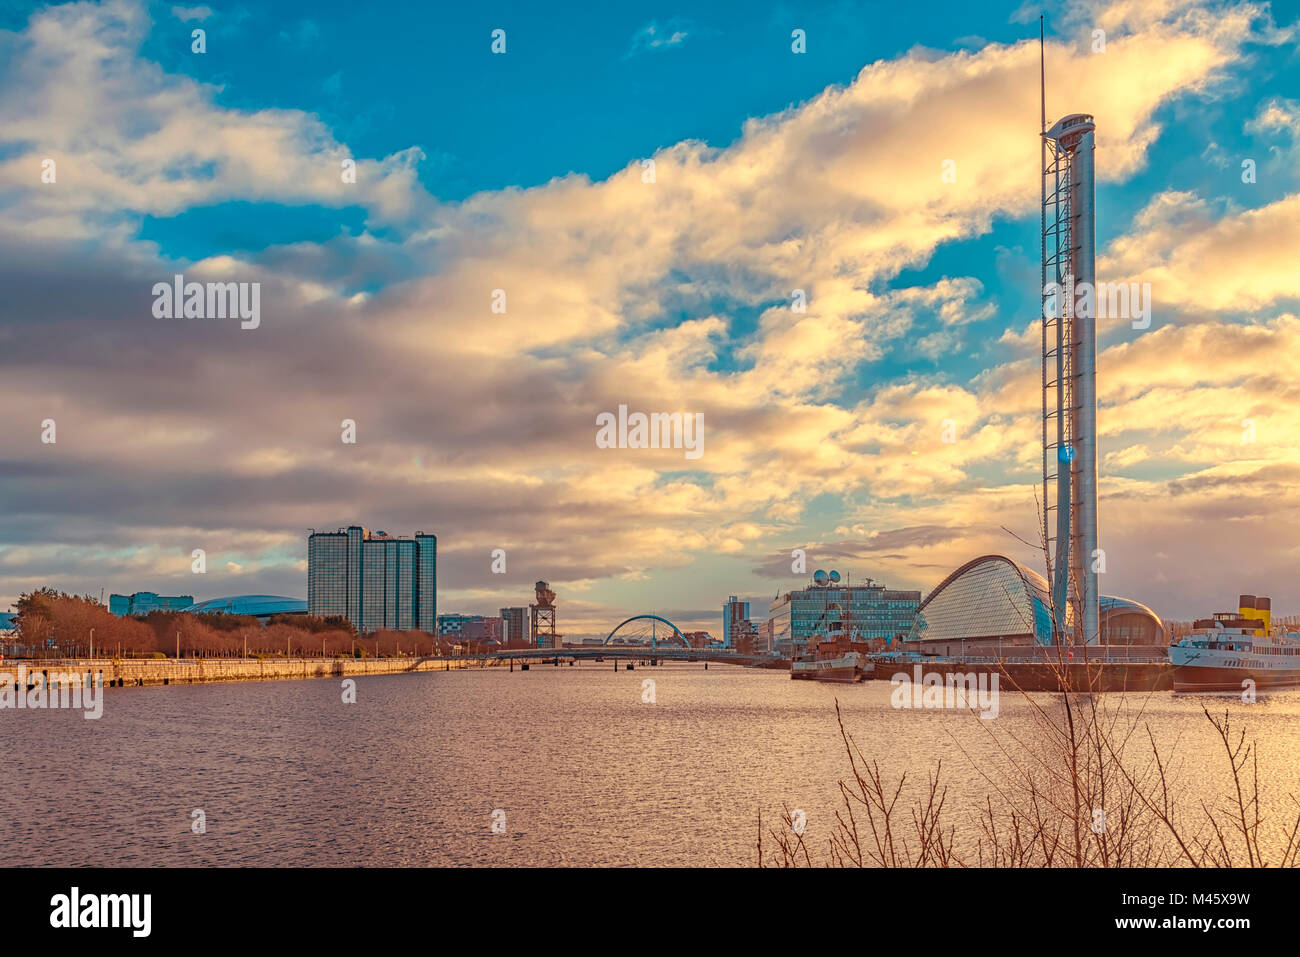 GLASGOW, SCOTLAND - JANUARY 17, 2018: A cityscape view of Glasgow from along the river clyde. Stock Photo